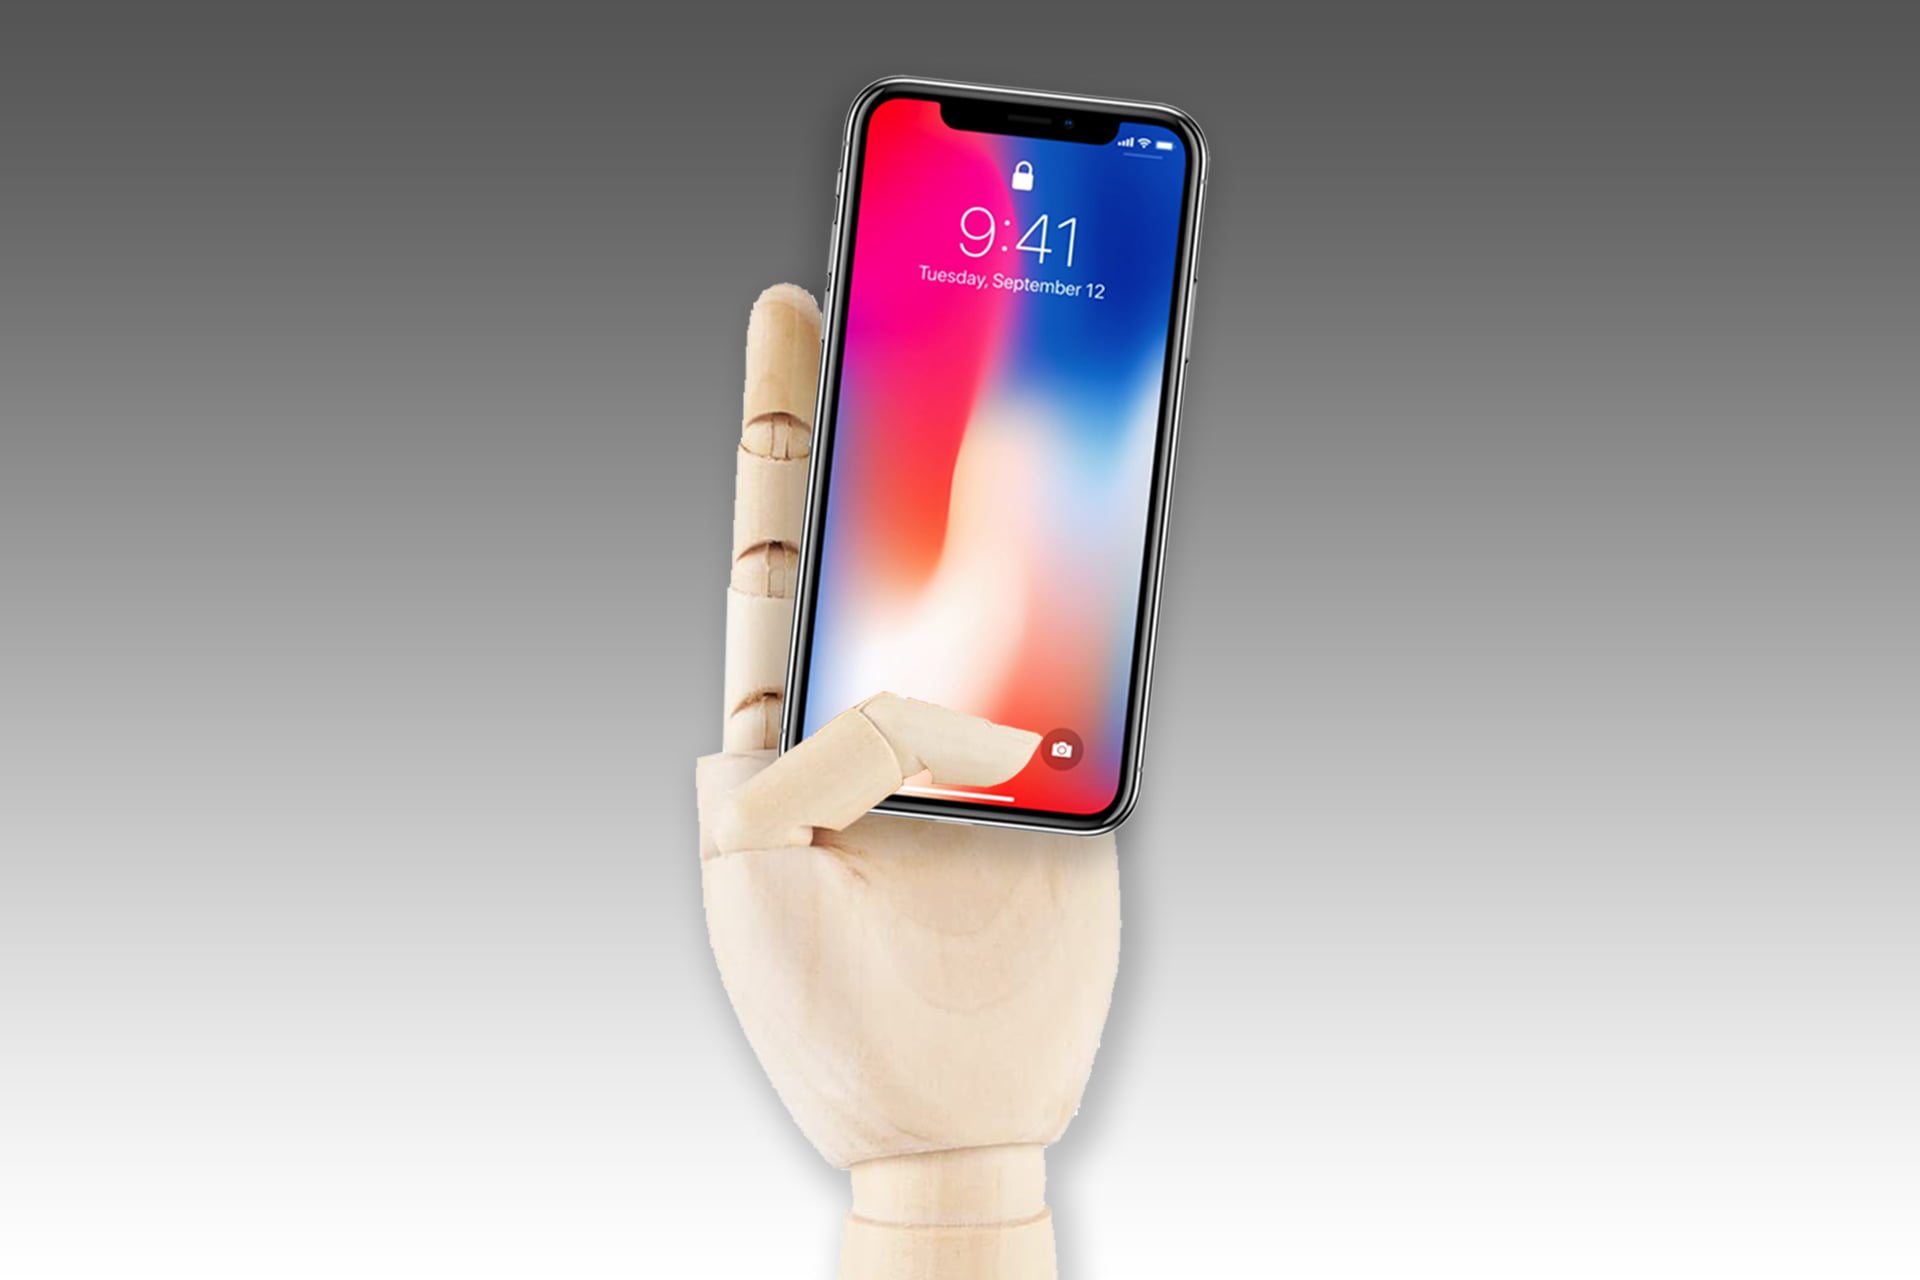 Mannequin-hand phone charger